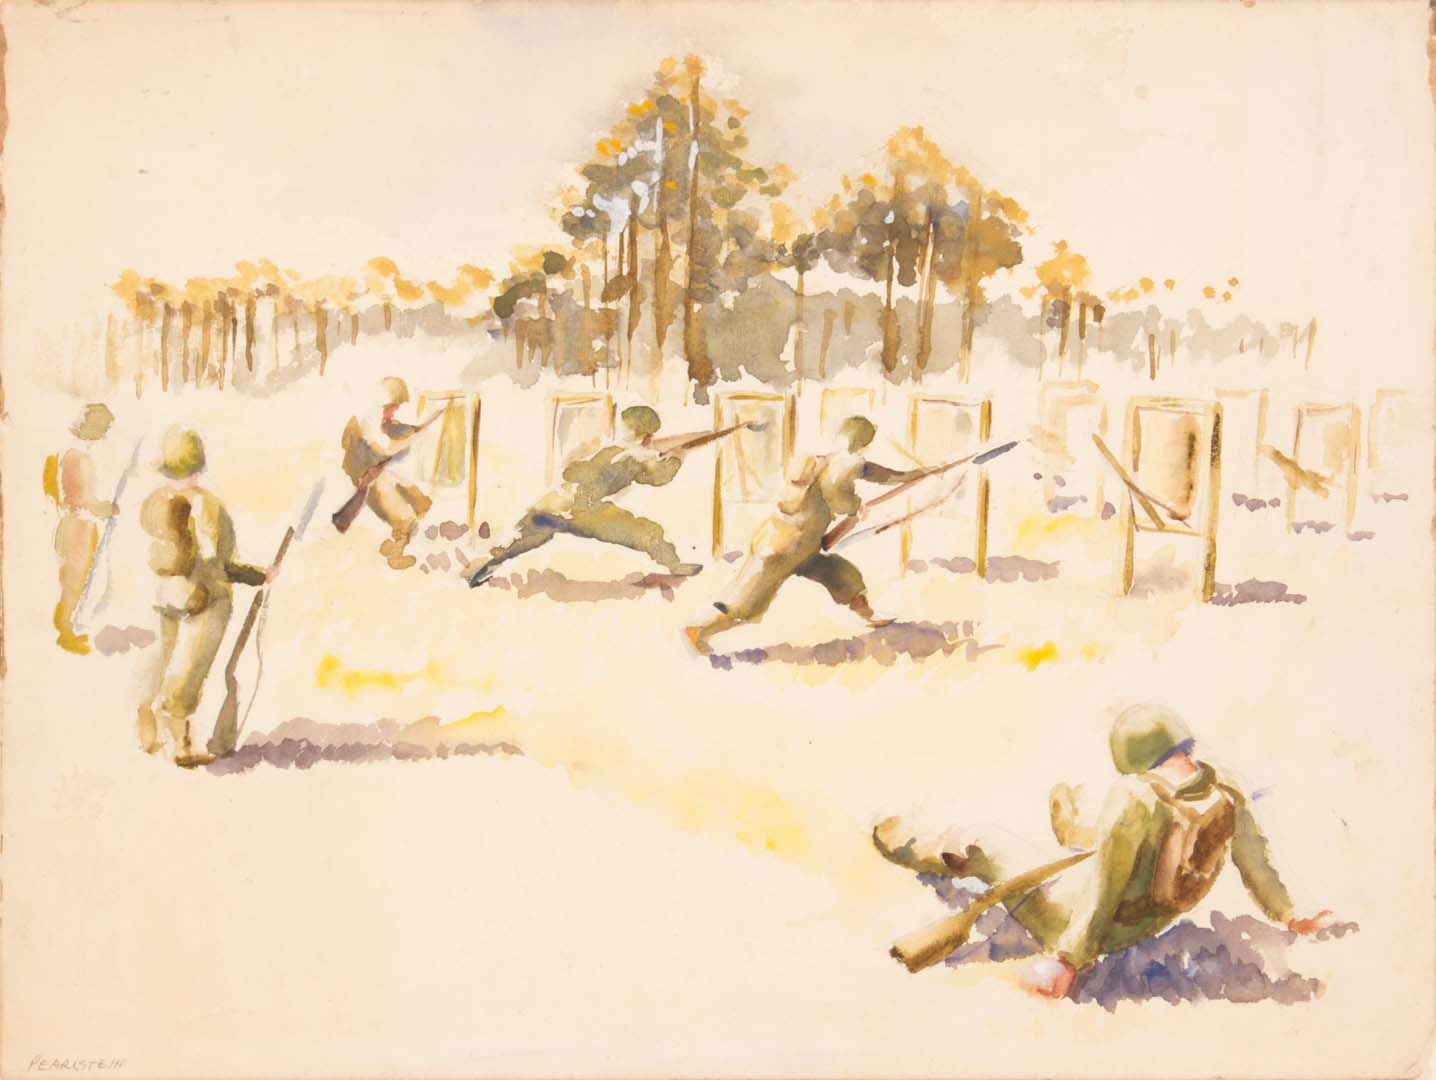 1943 Training in Florida I (1 Soldier Sitting